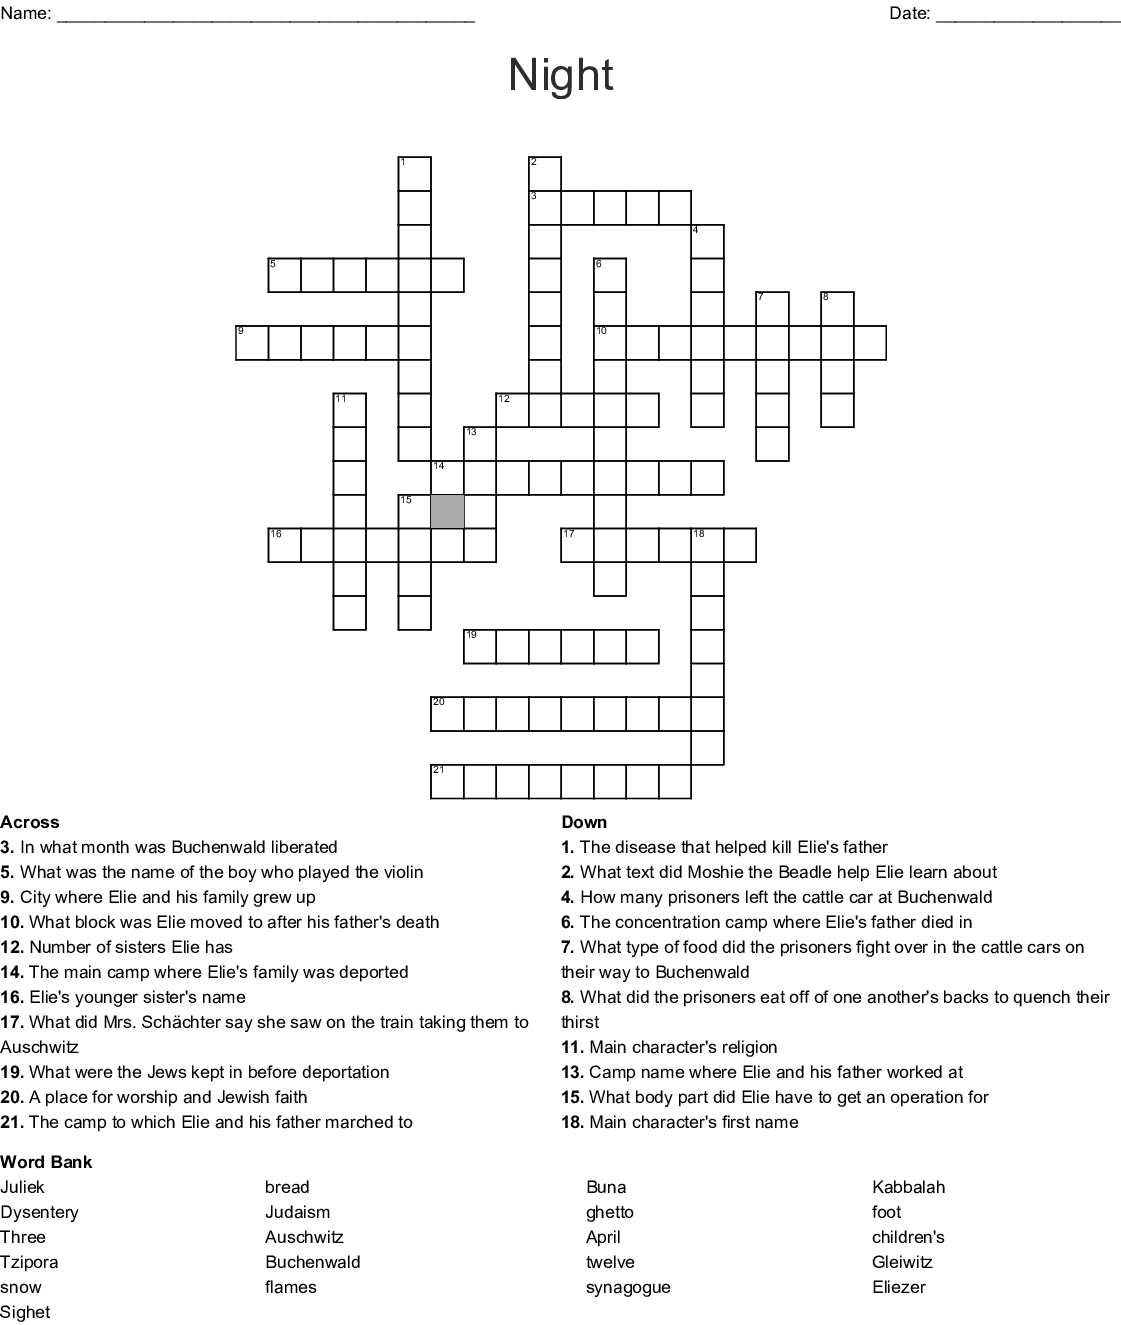 Night Crossword